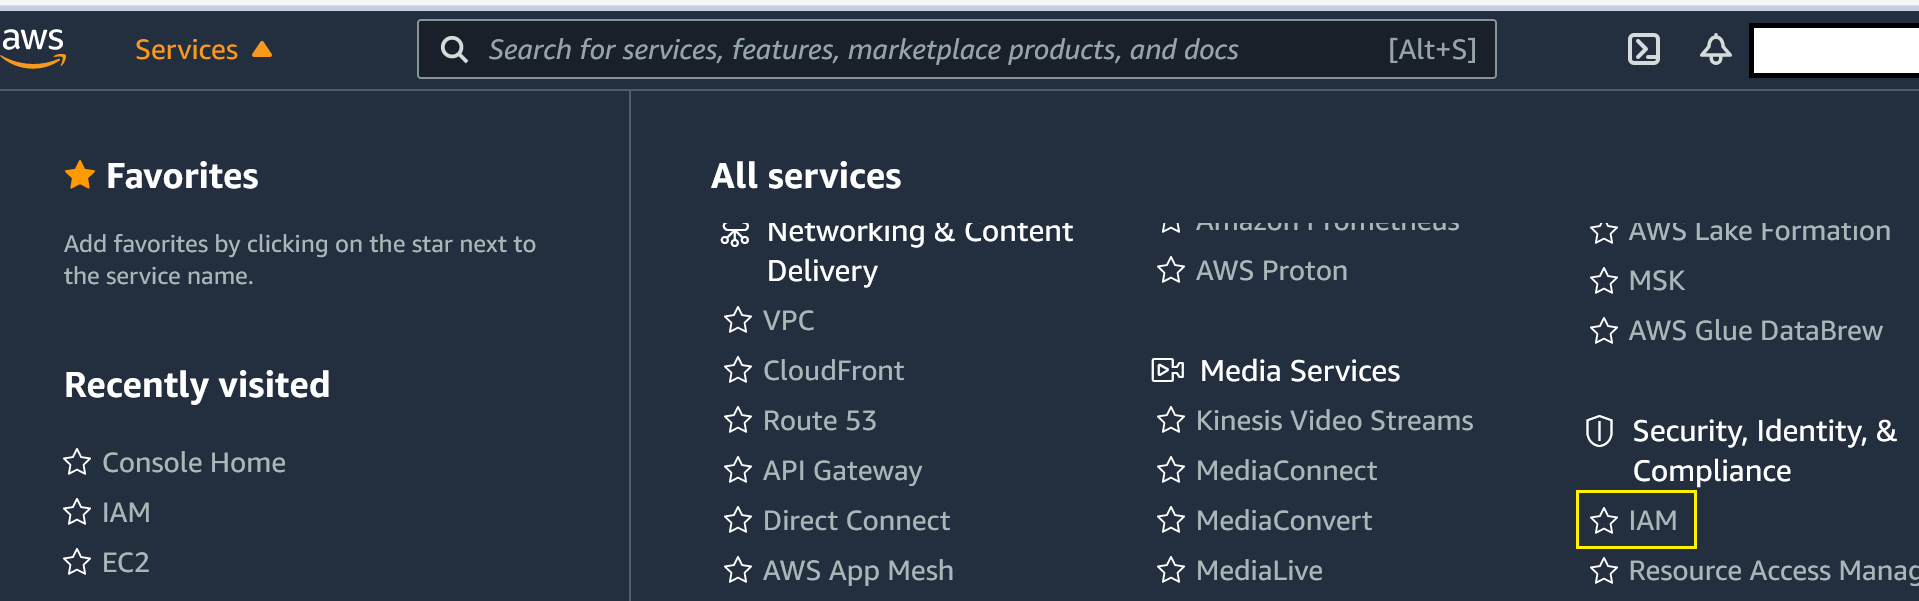 AWS Management Console showing services drop-down menu and IAM selection.